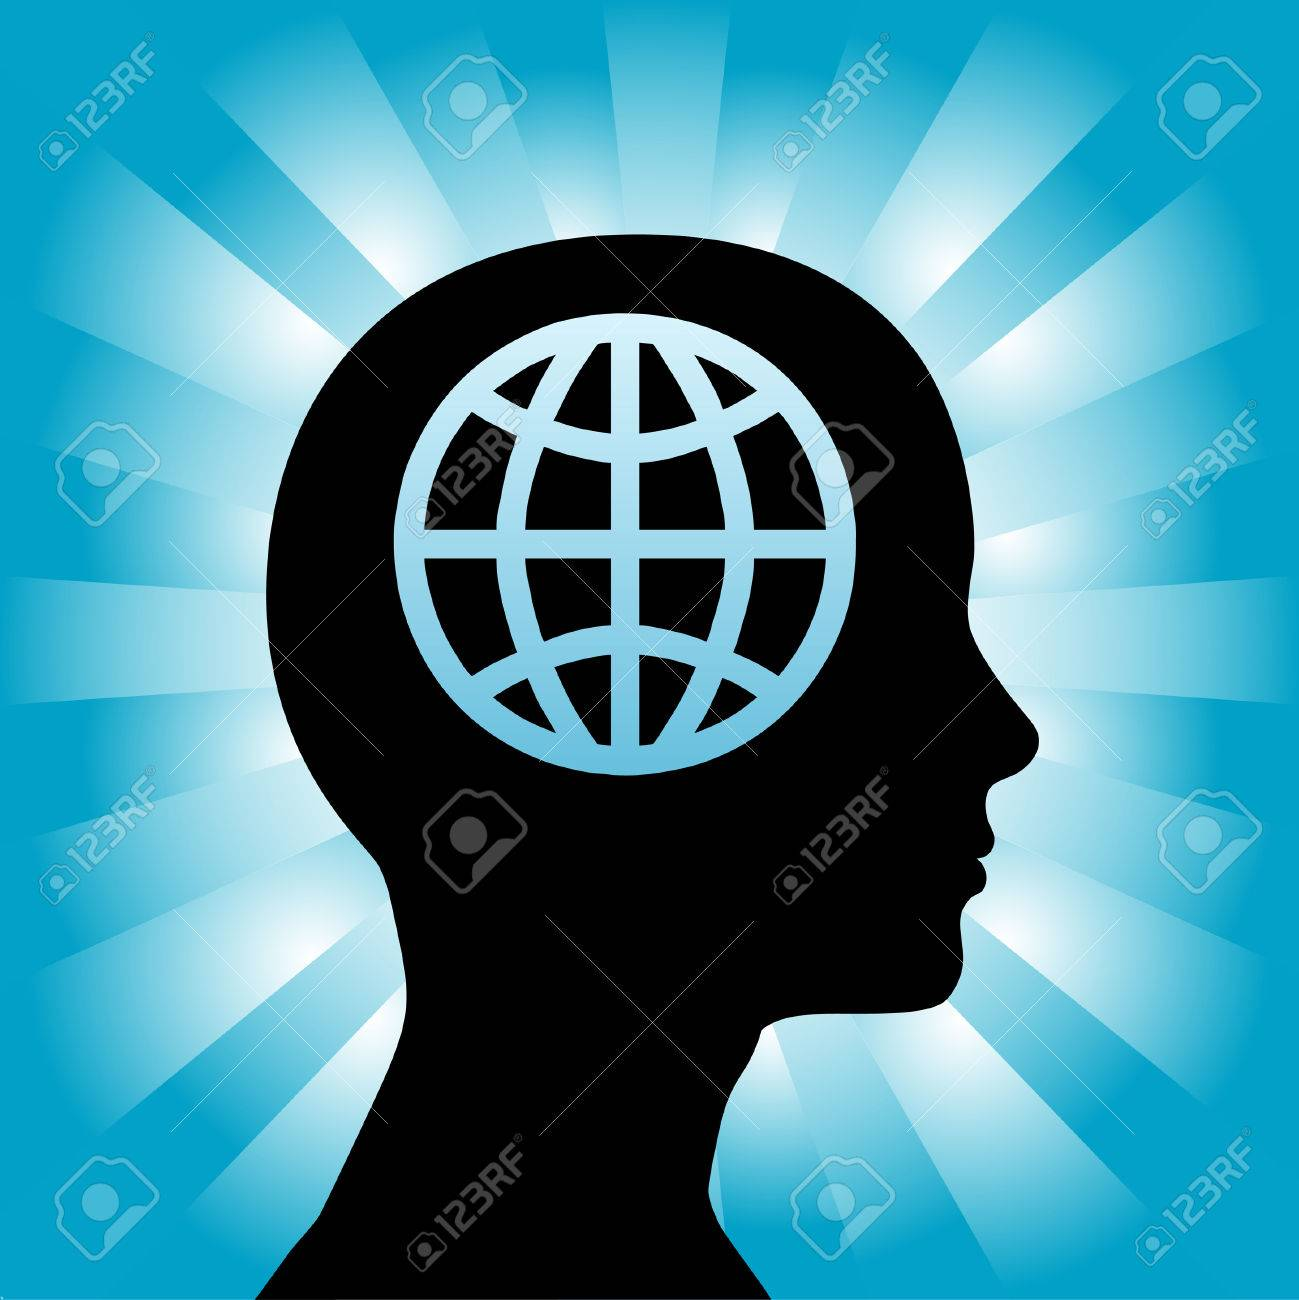 A globe in the head of a silhouette woman as she thinks globally. Stock Vector - 3604618